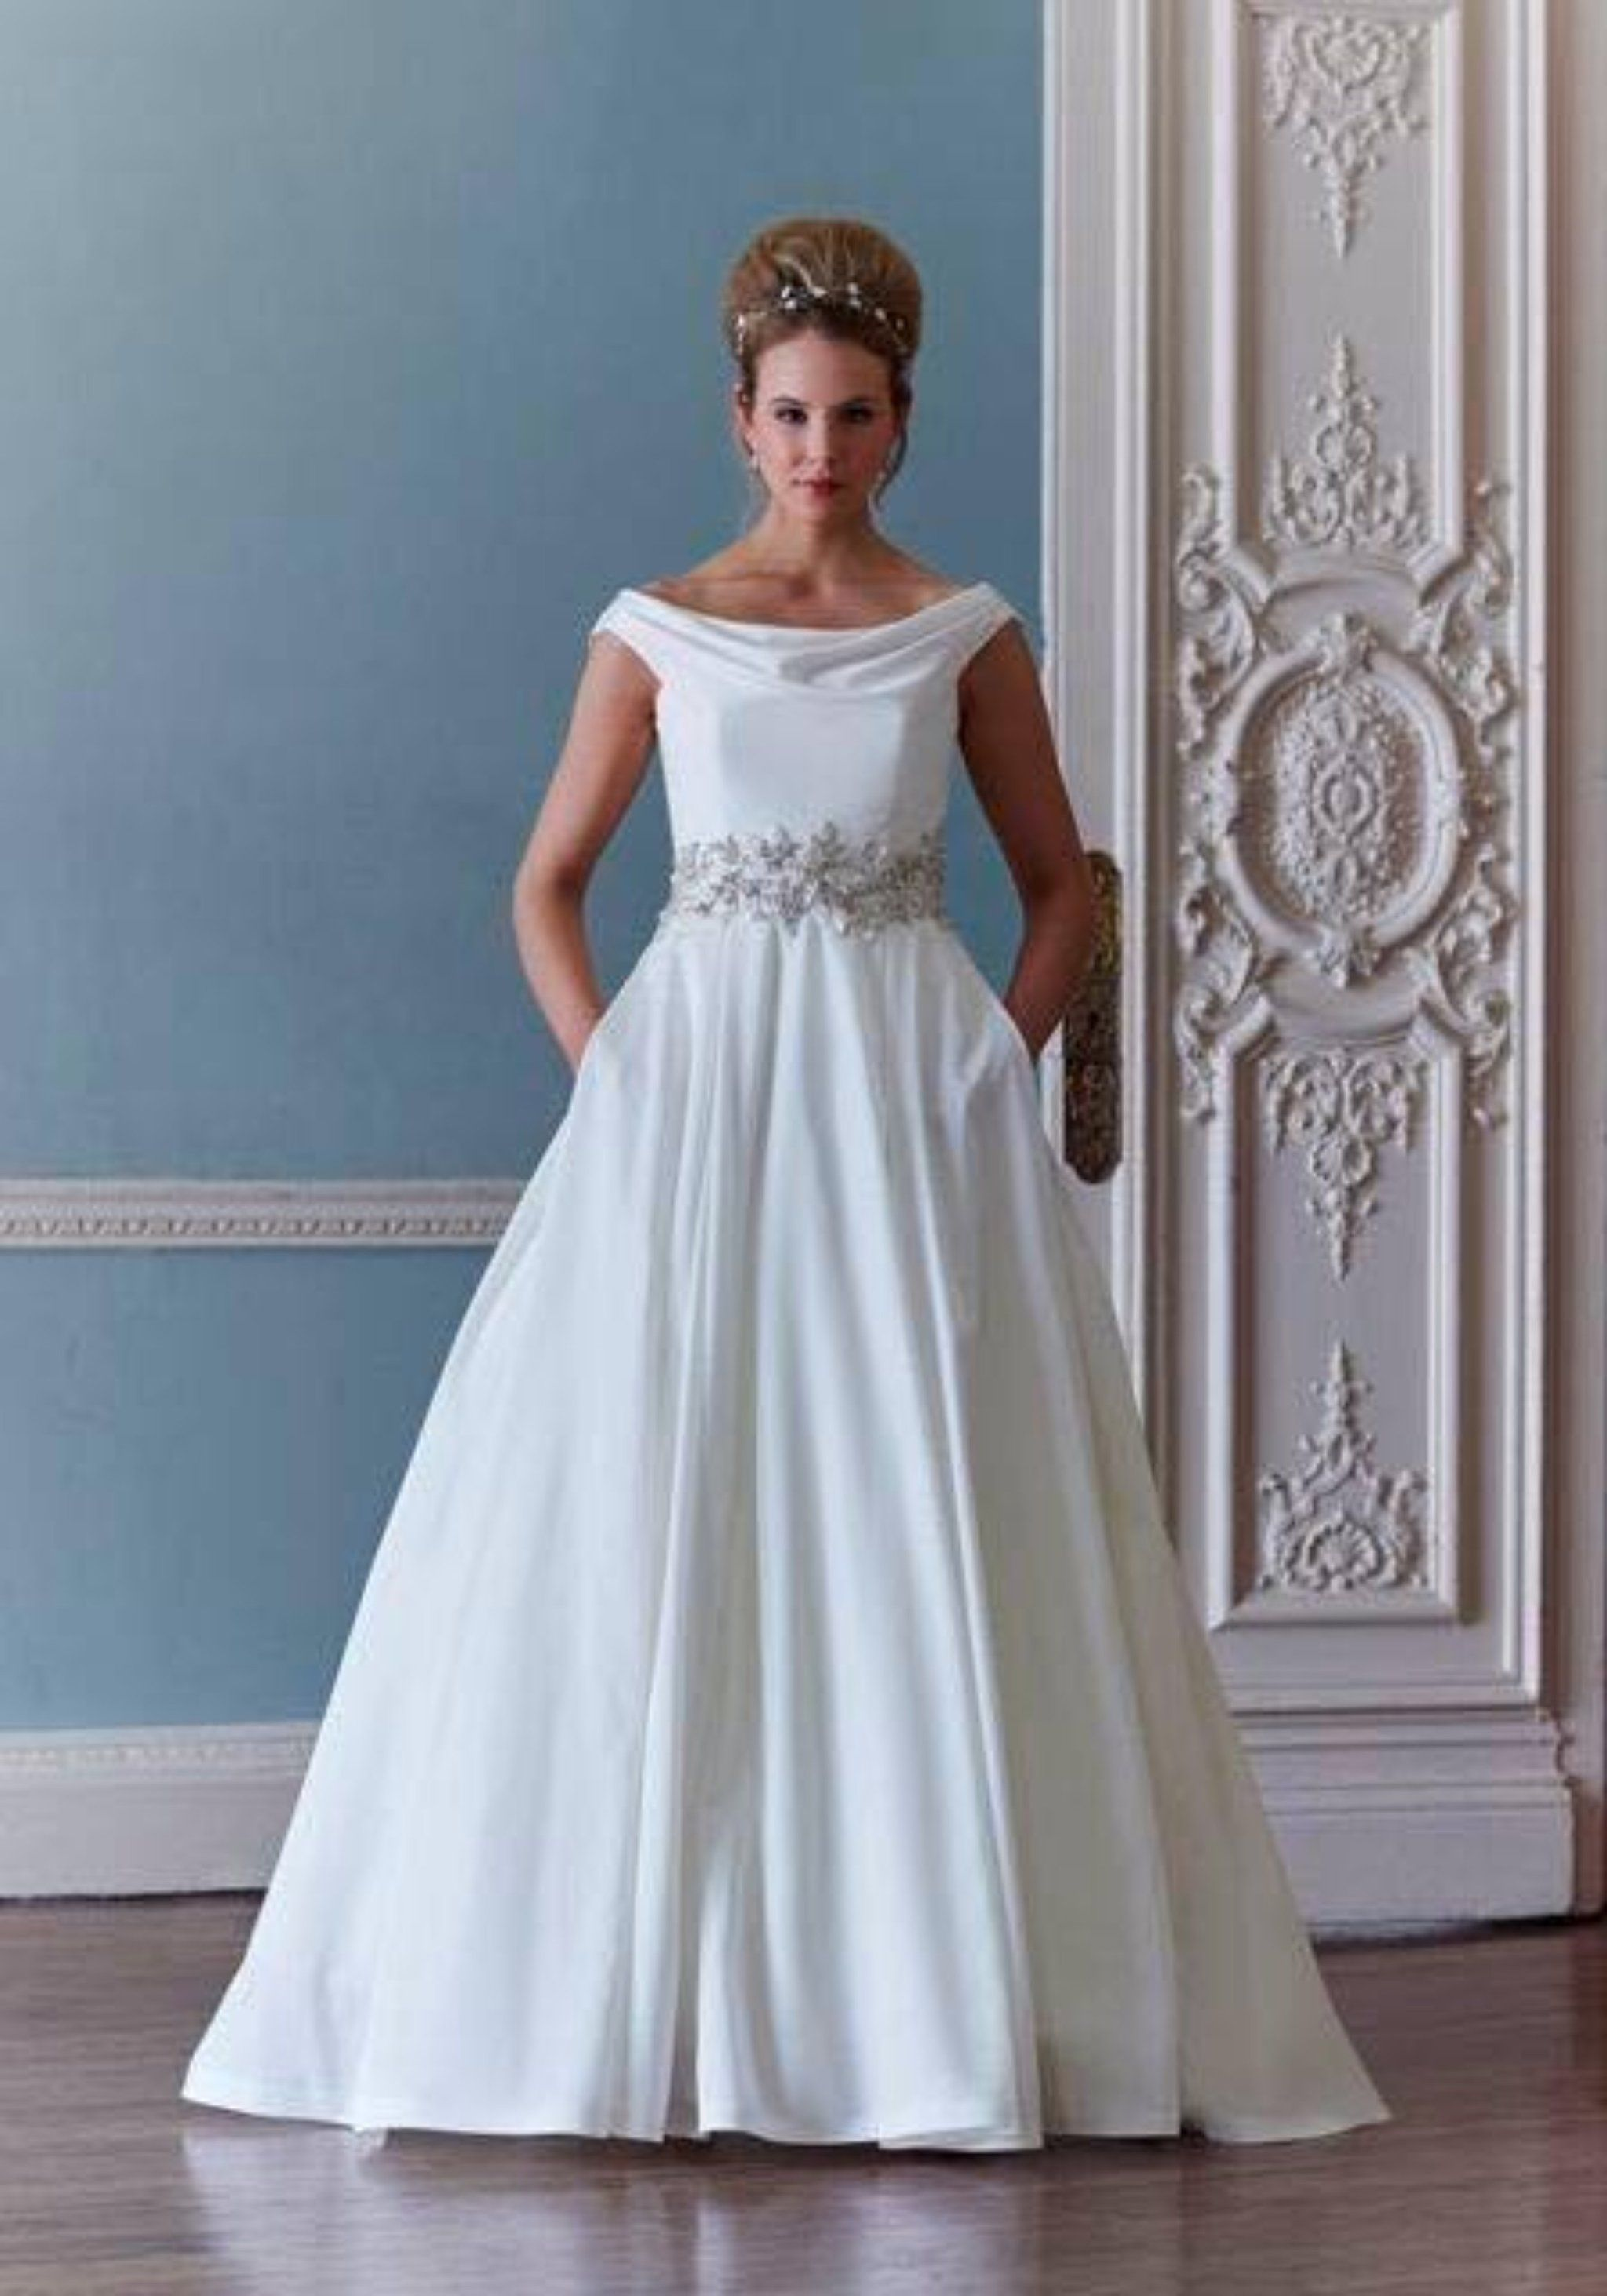 SASSIE HOLFORD MISCHA | WEDDING DRESSES IN THE SHOP - CHEAP,PRELOVED ...